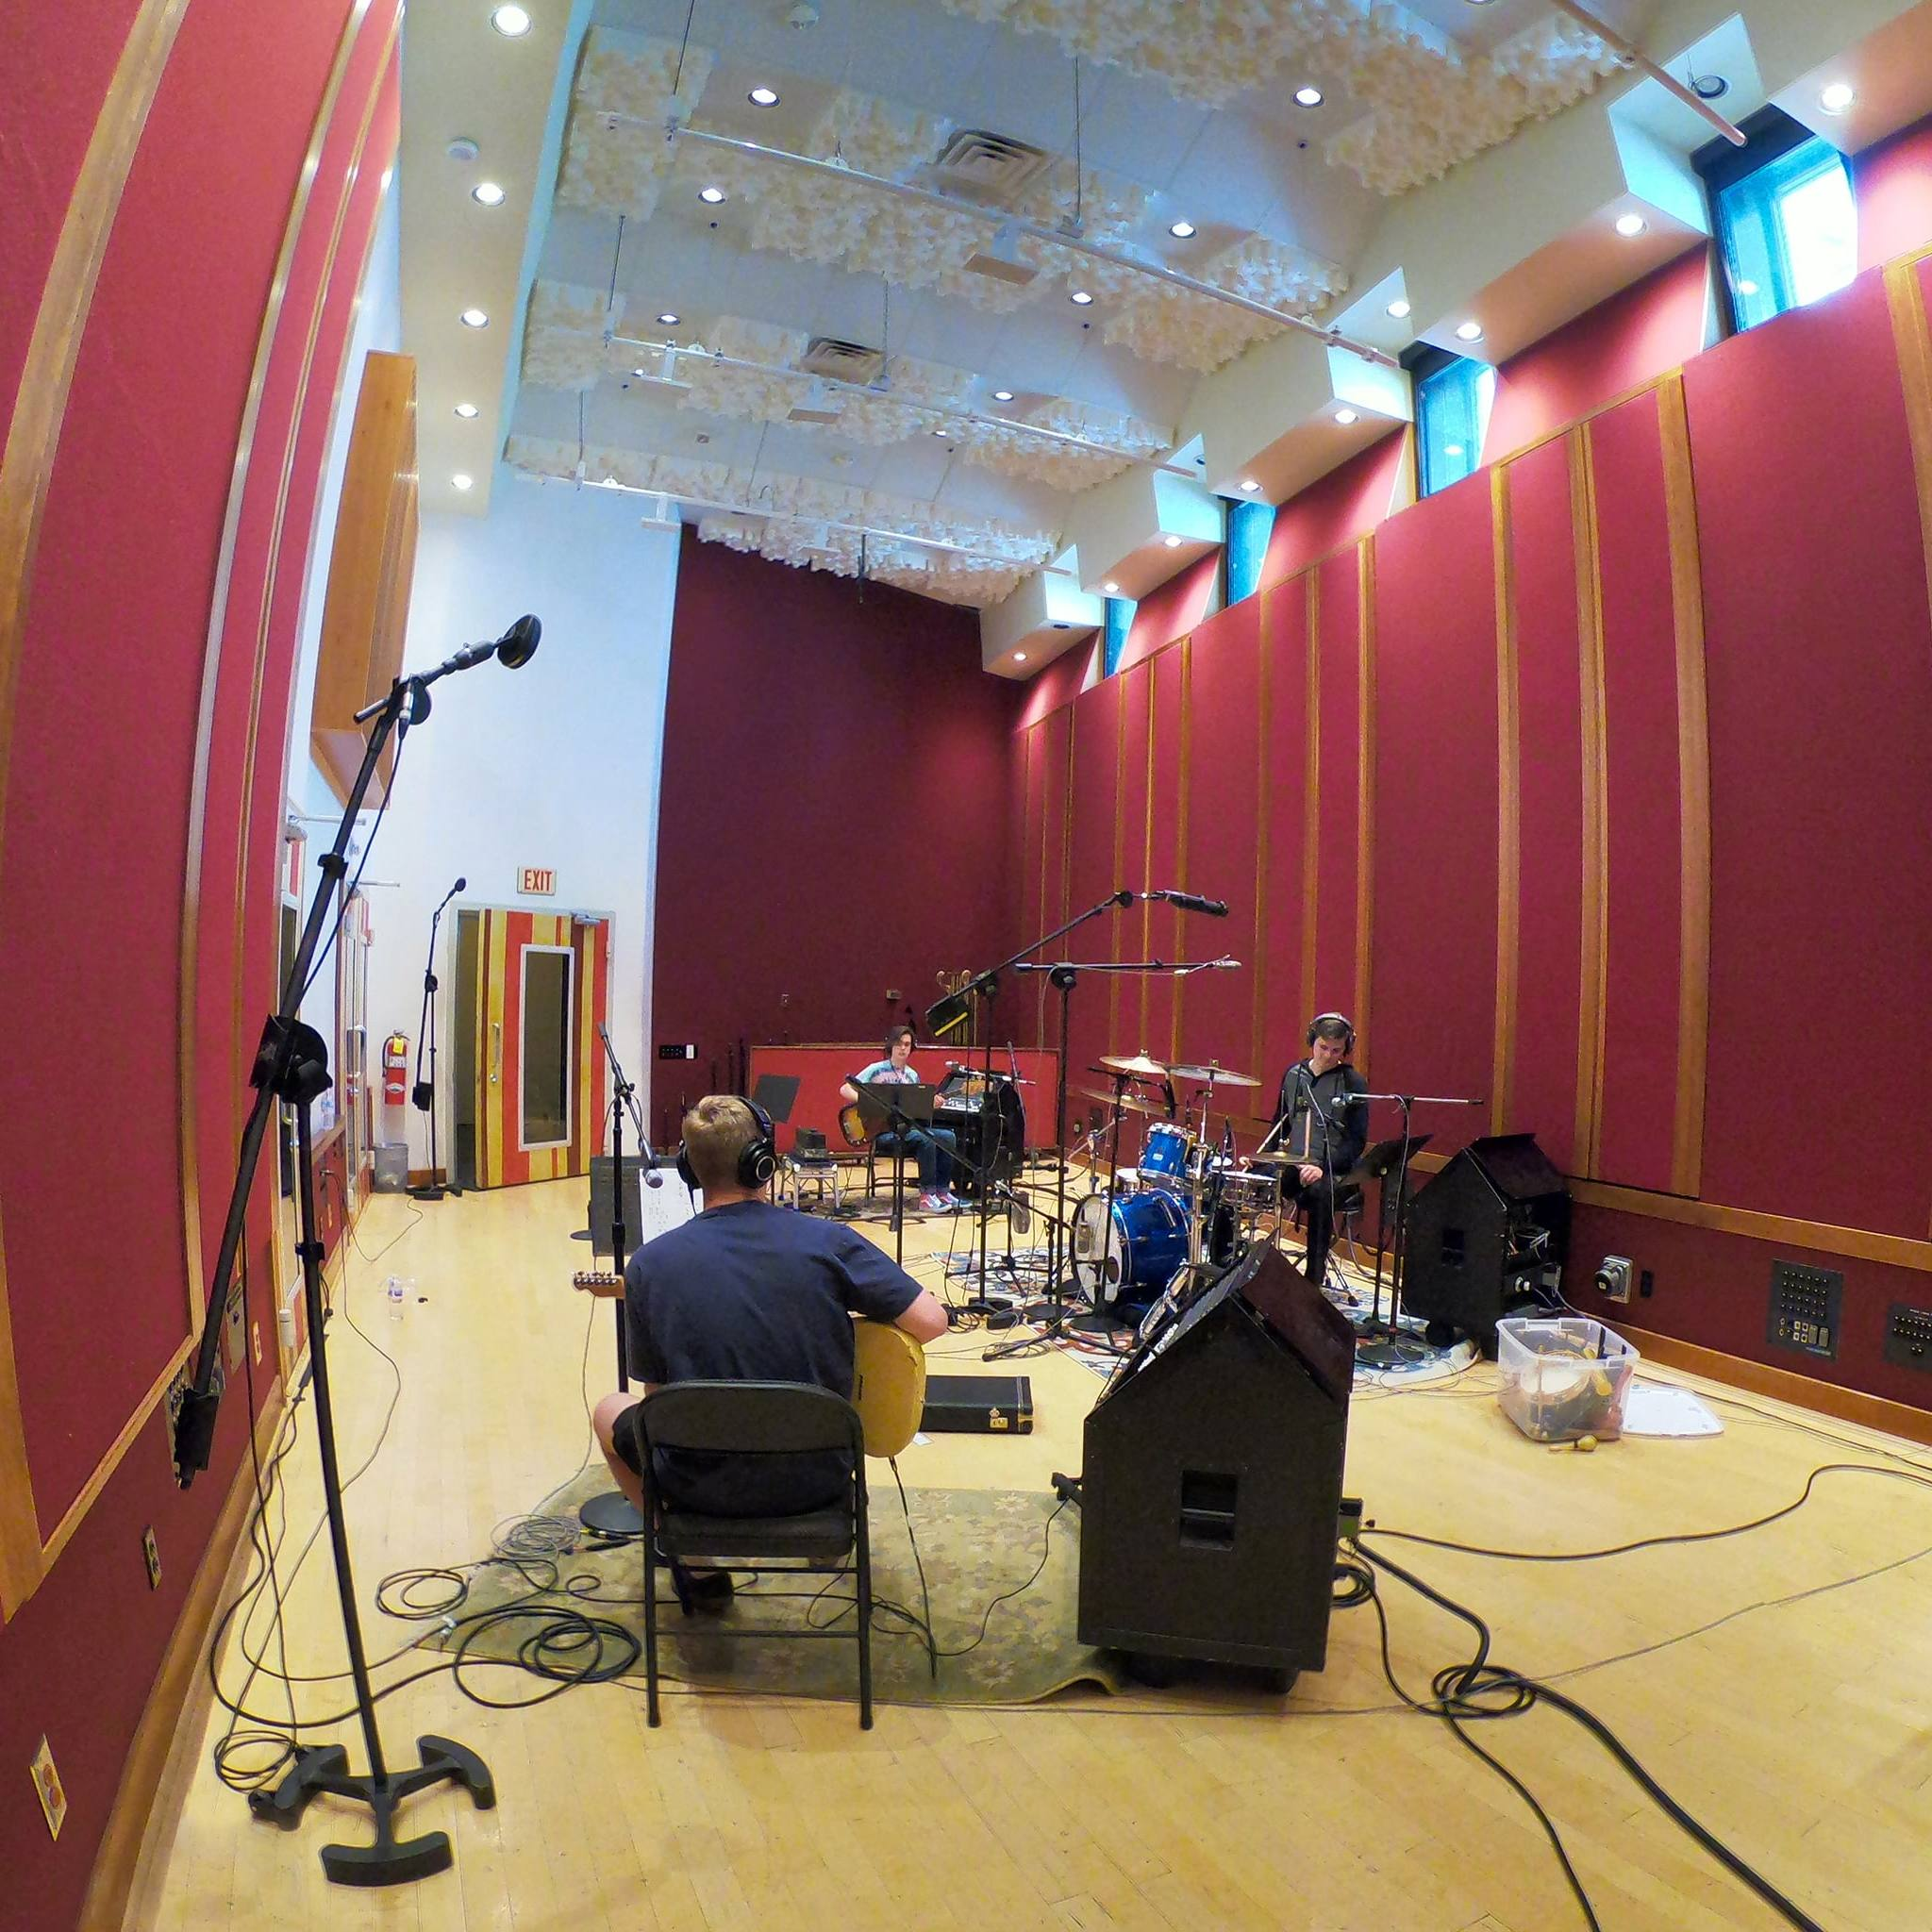 Summer camp in live room